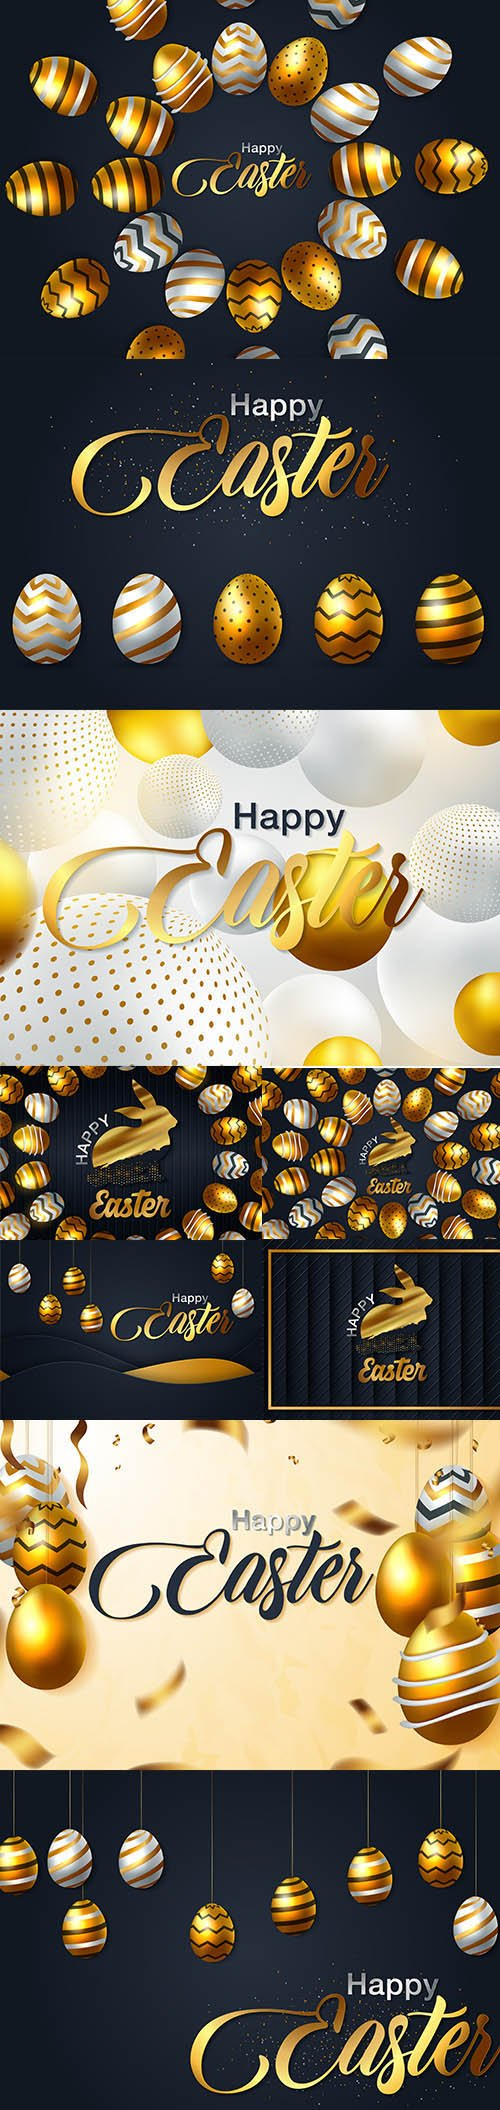 Happy Easter Luxury Backgrounds Template Vector Set